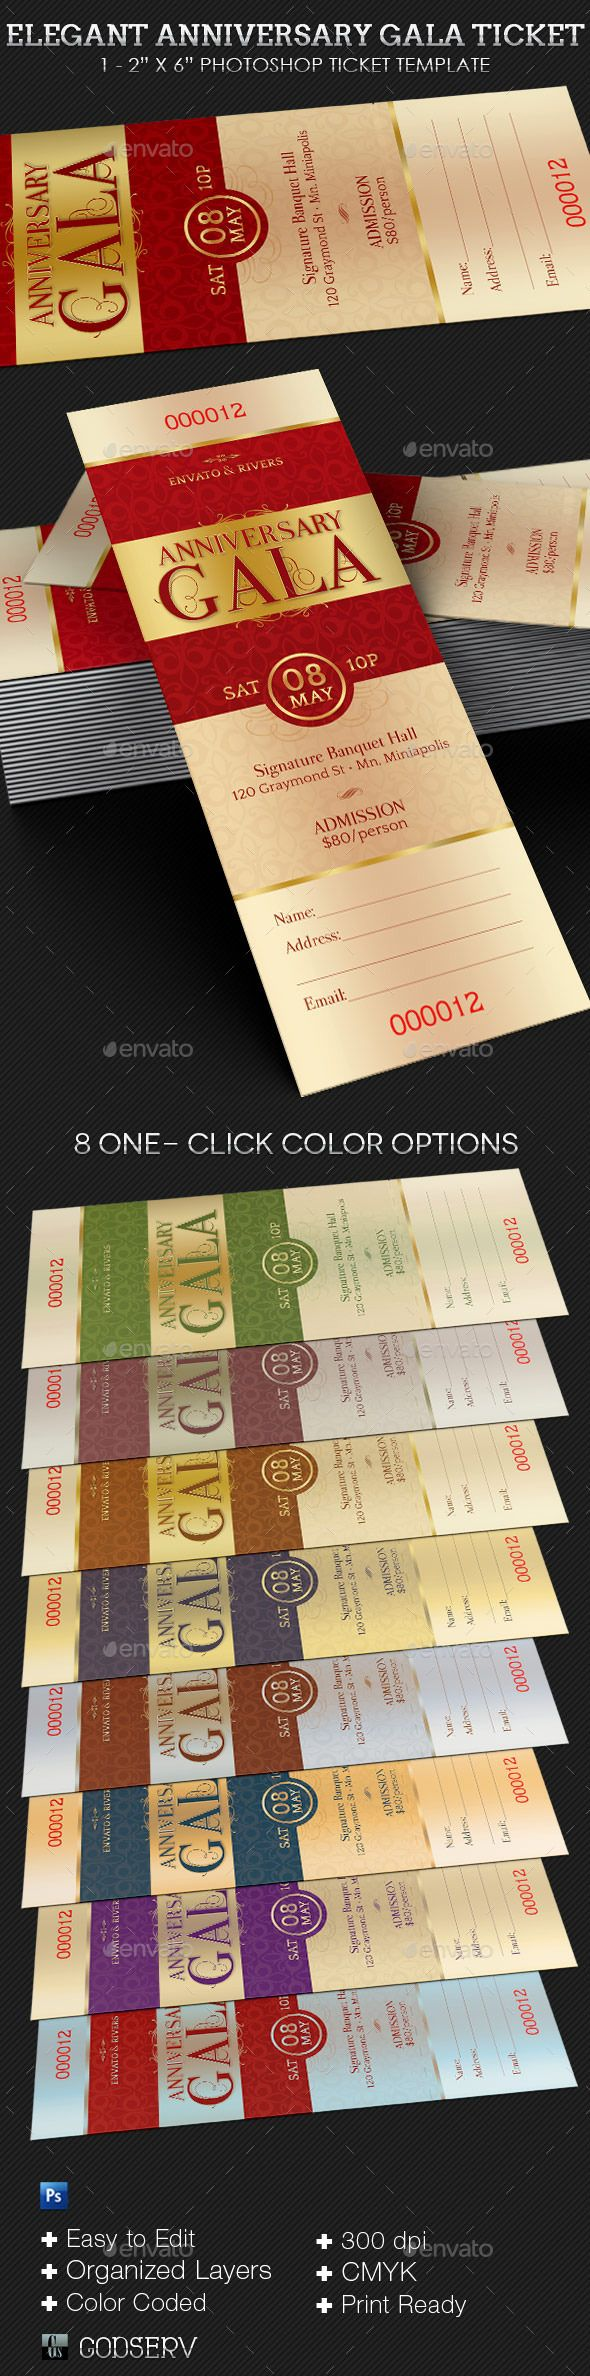 sample invitation letter to attend an event%0A Elegant Anniversary Gala Ticket Template  Miscellaneous Print Templates